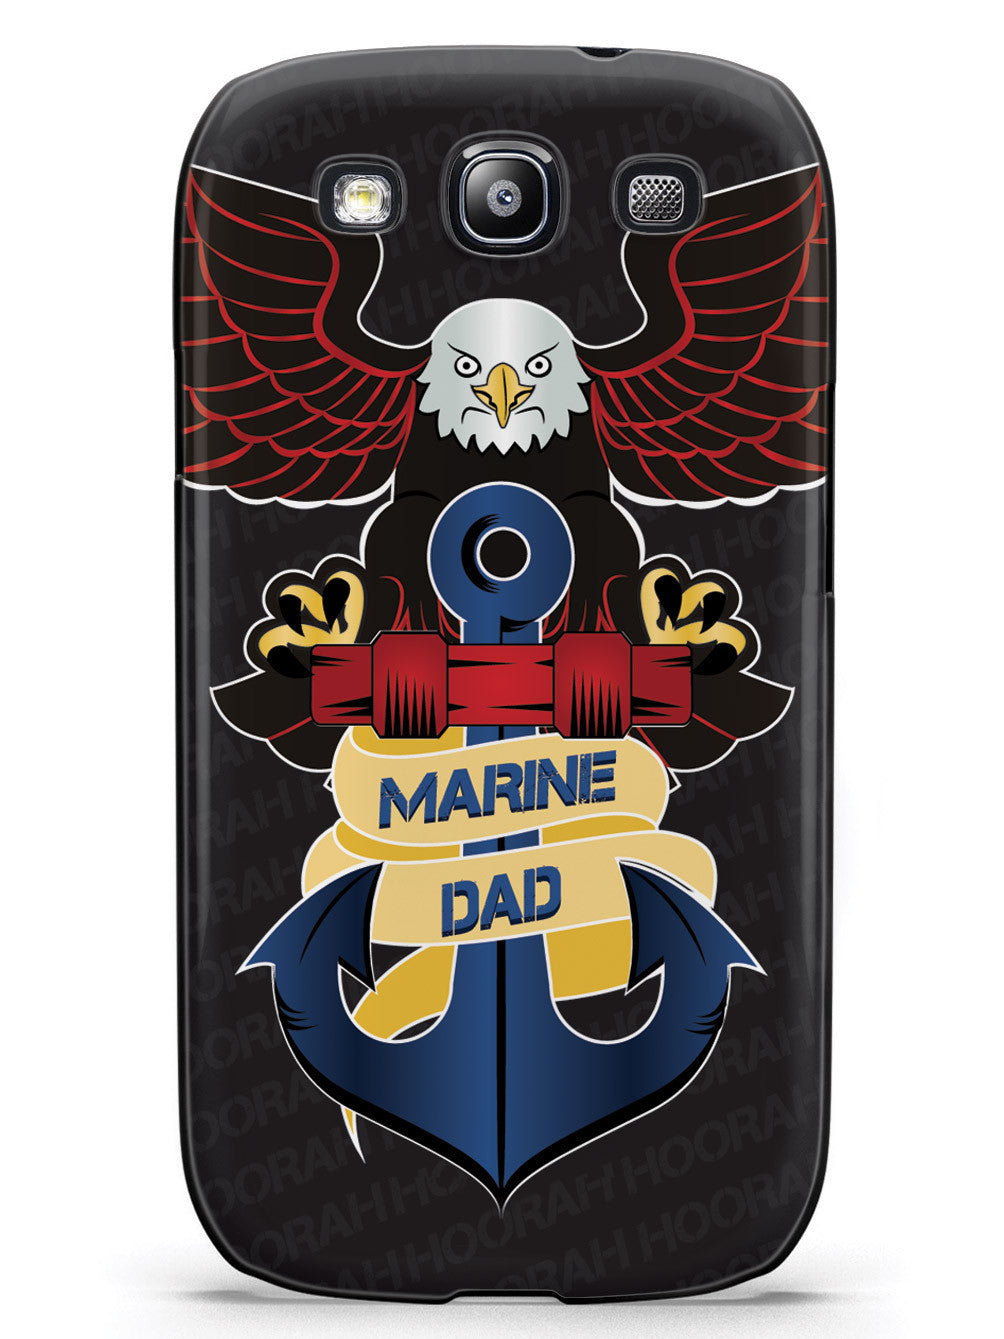 Marine Dad Case